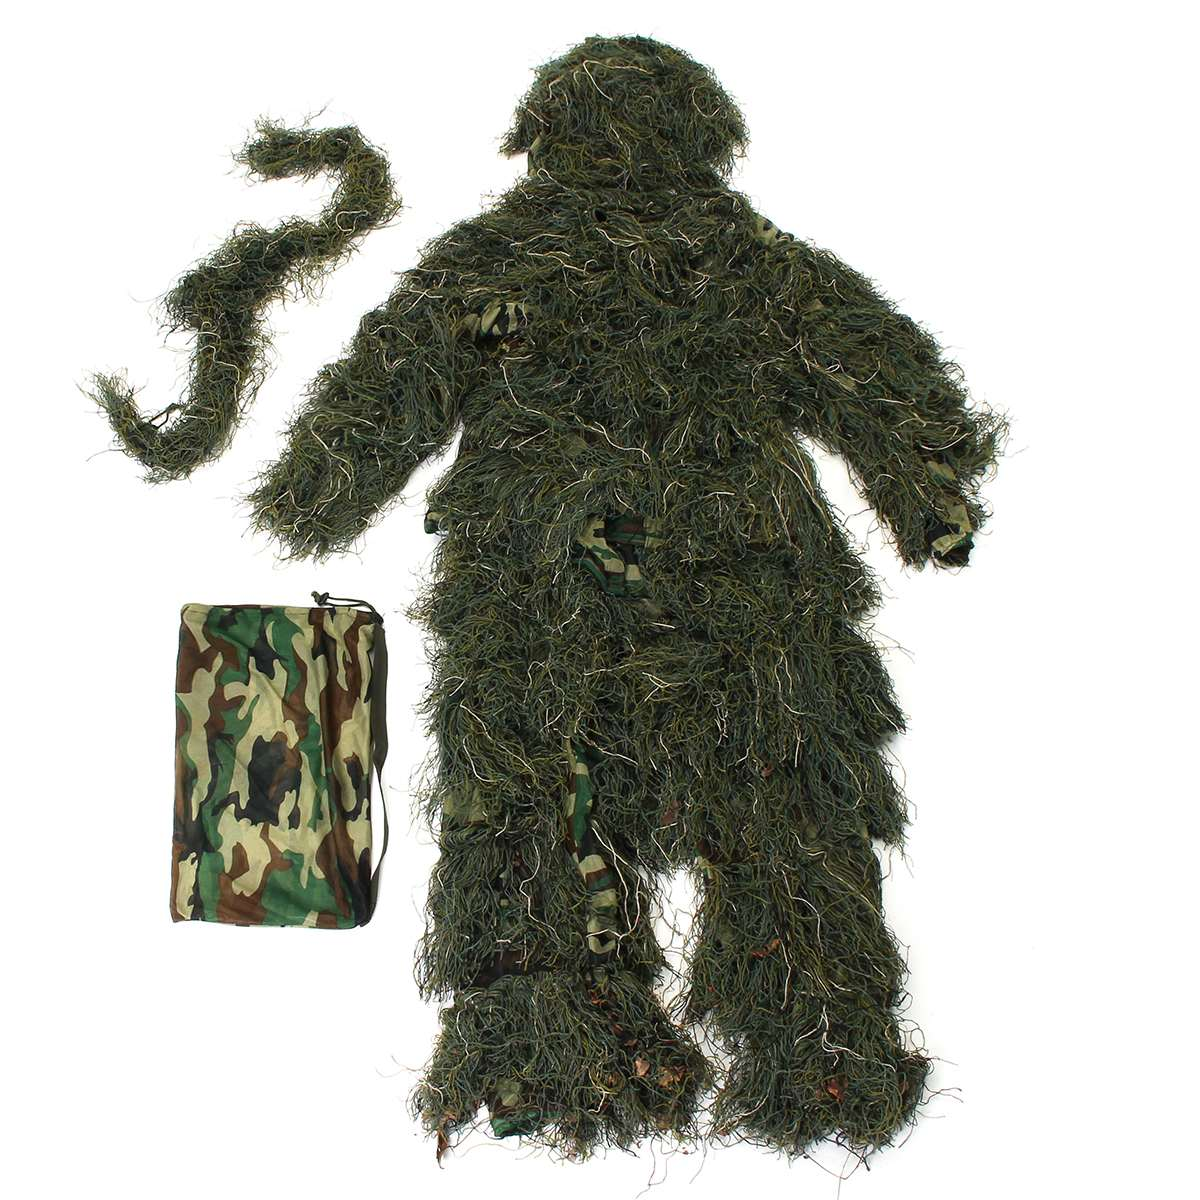 5 Piece Ghillie Suit Woodland Camo Camouflage Durable Polyester Clothing 3D Rifle Wrap Hunting Size clothes durable dabbling camouflage trousers size l